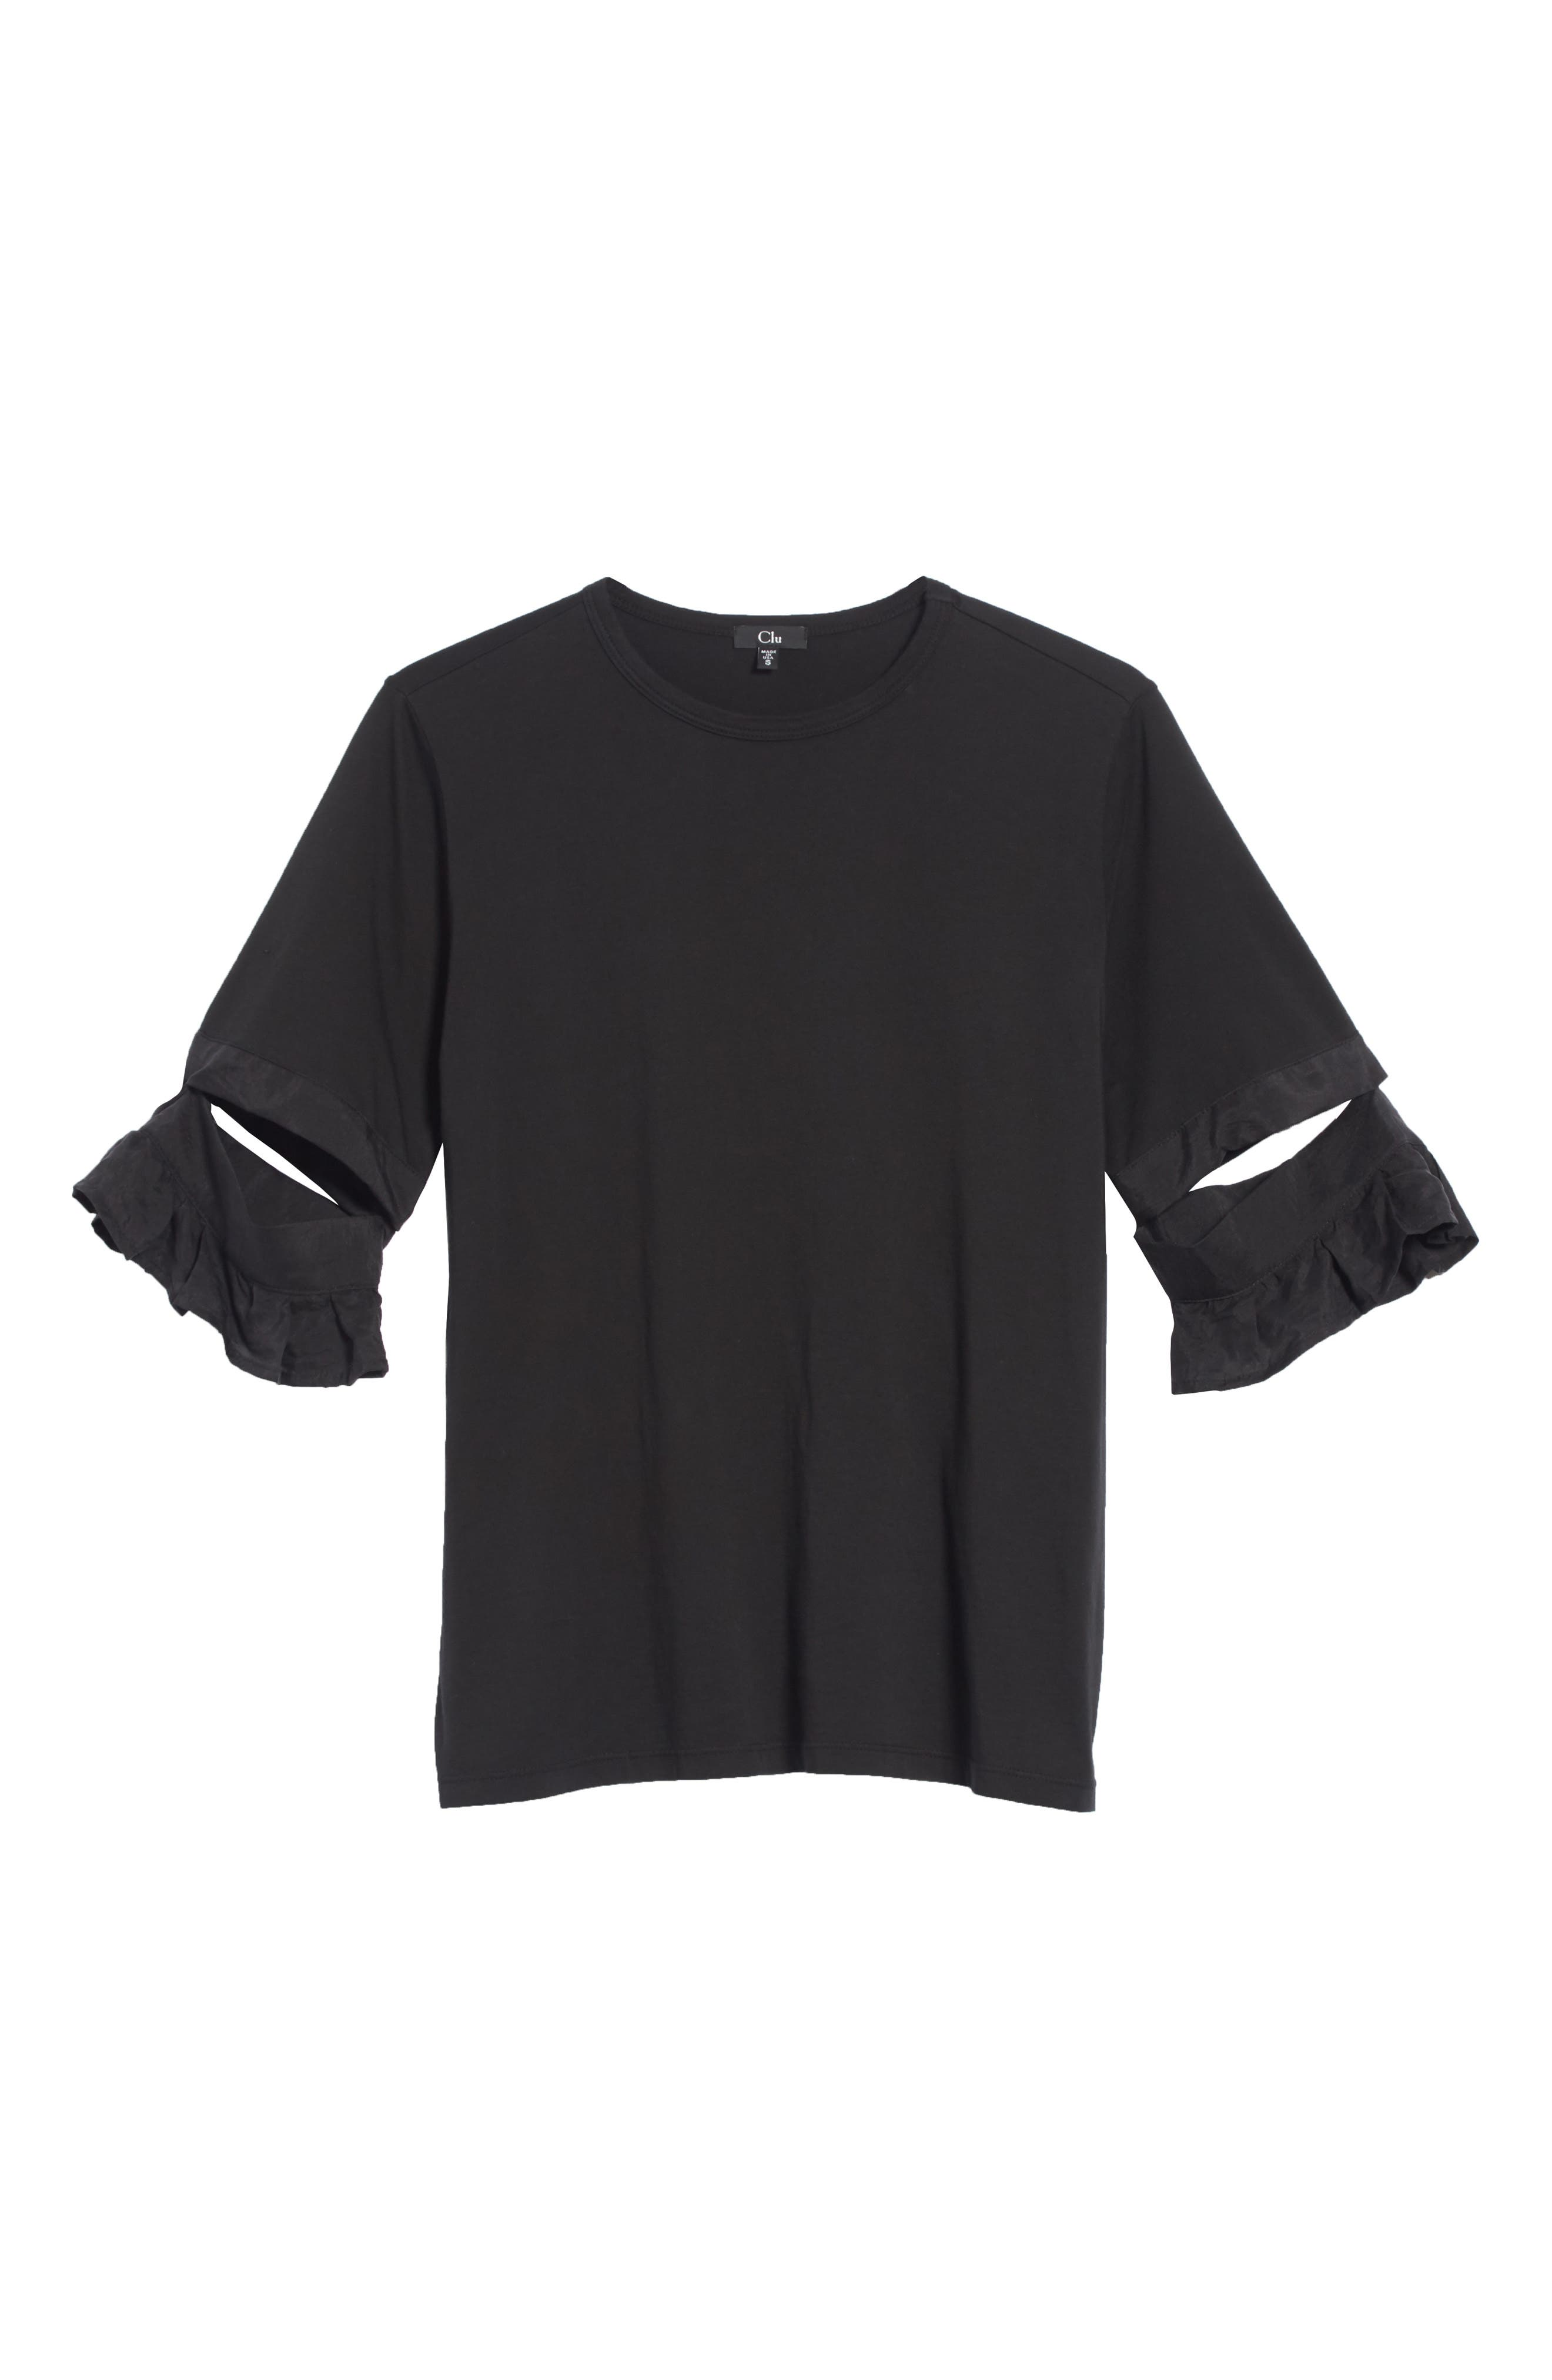 Open Sleeve Top,                             Alternate thumbnail 6, color,                             BLACK